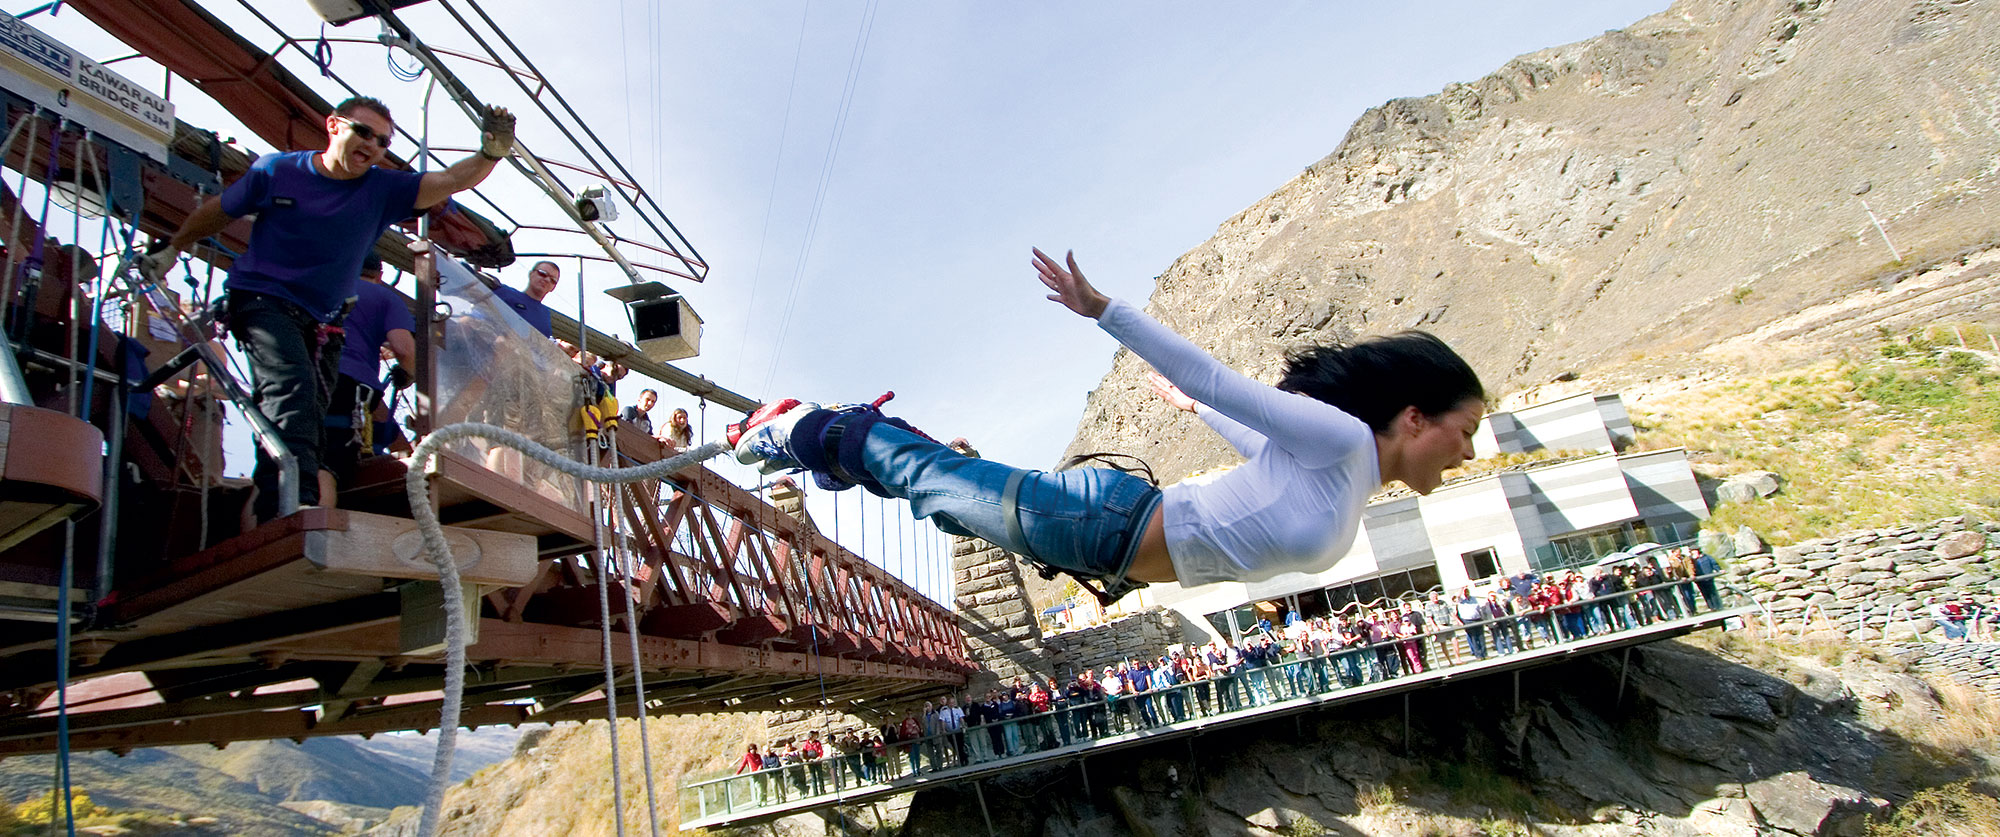 New Zealand Honeymoon Adventure - Bungee jumping Queenstown